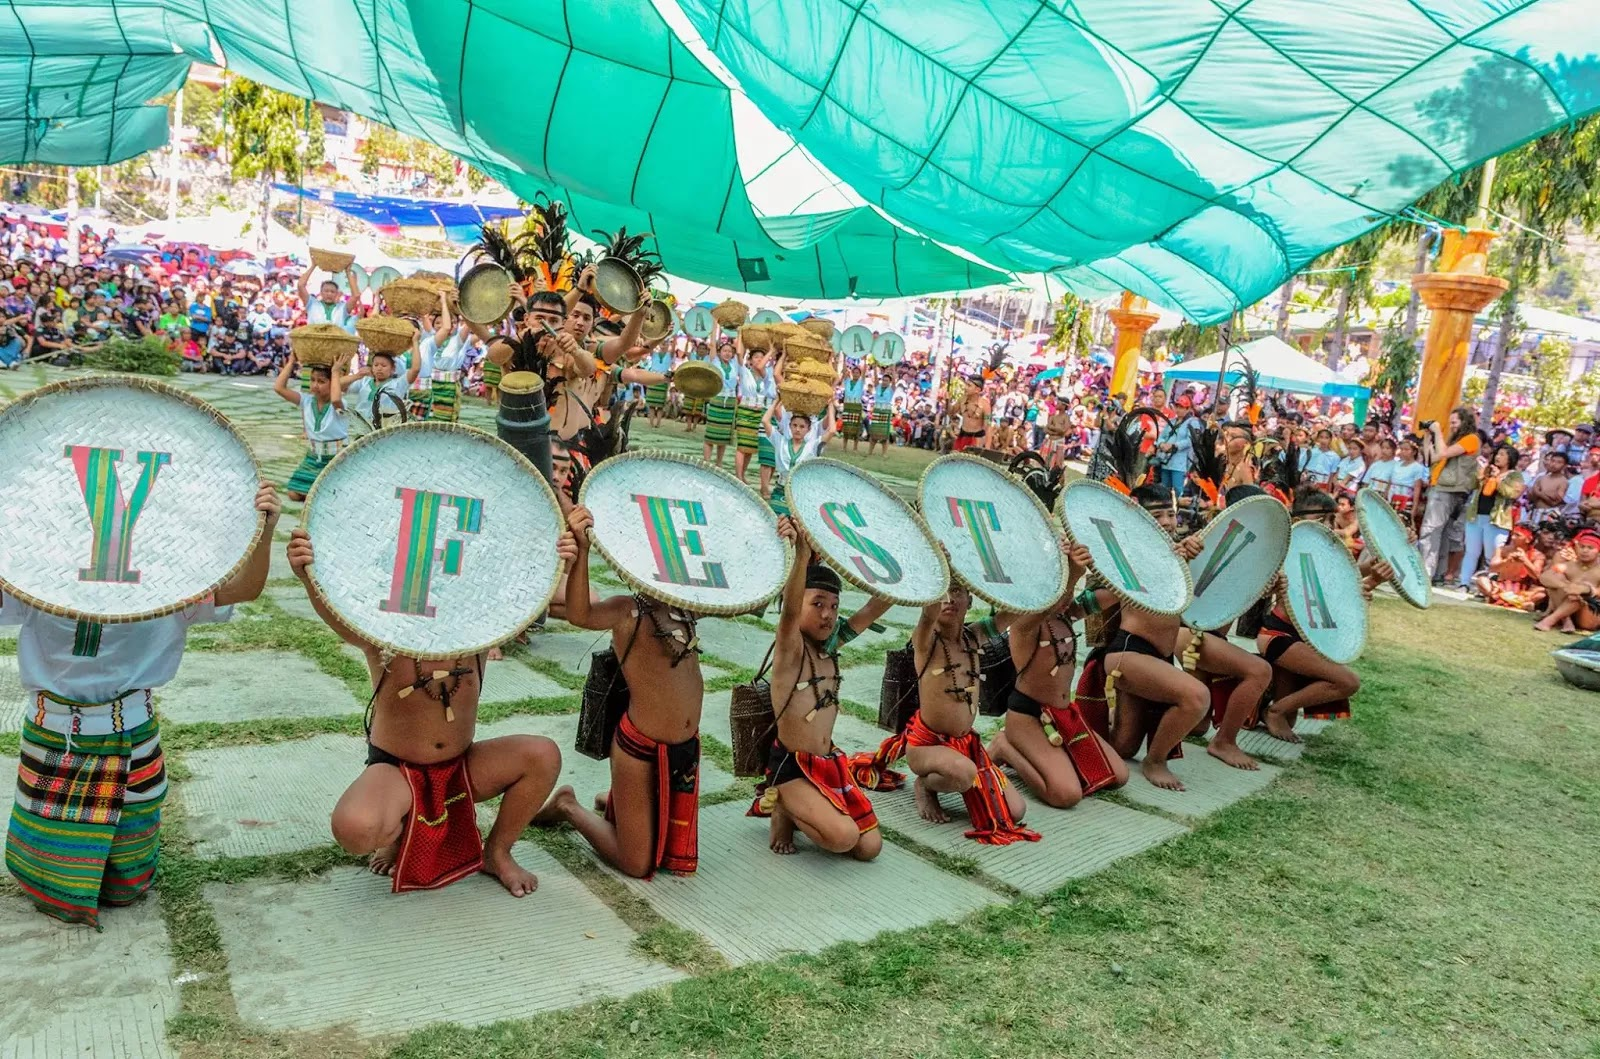 FESTIVAL Signage 13th Lang-Ay Festival Bontoc Mountain Province Cordillera Administrative Region Philippines